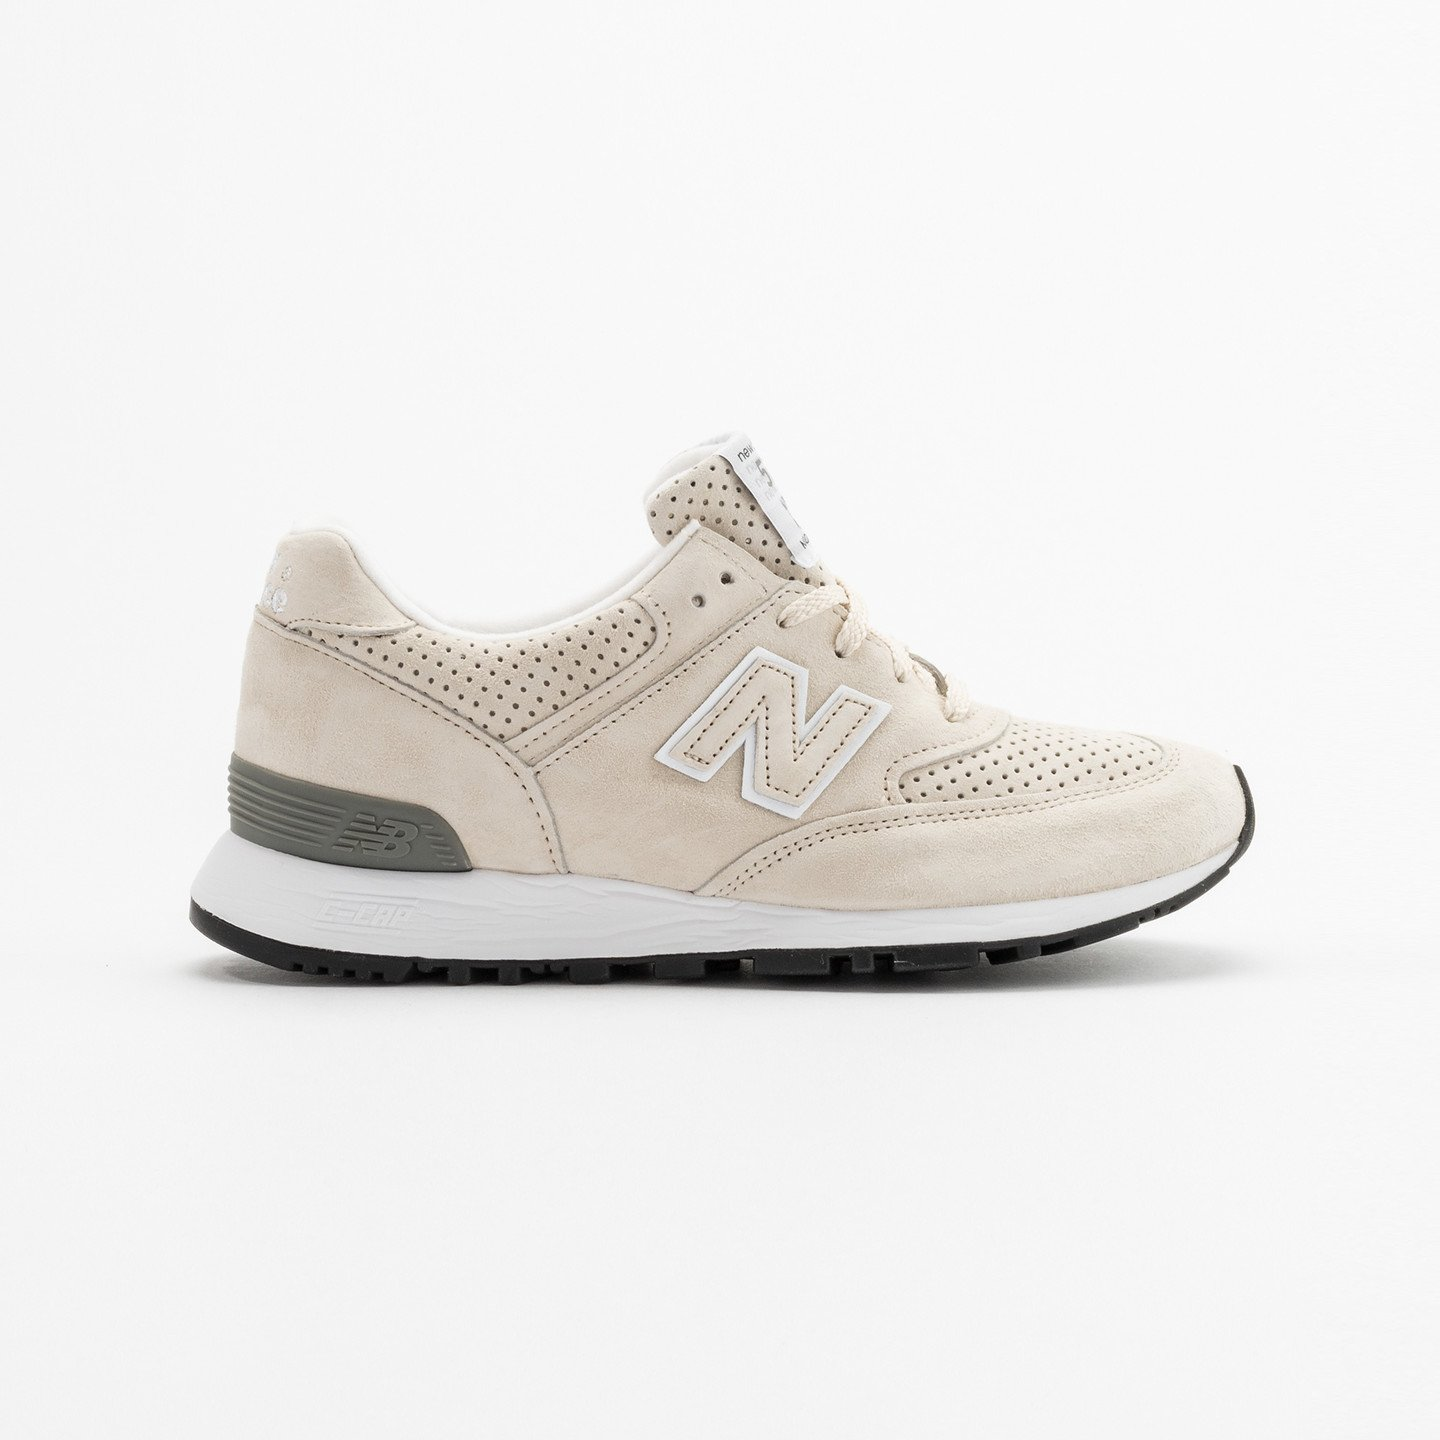 New Balance W576 TTN - Made in UK Sand / White W576TTN